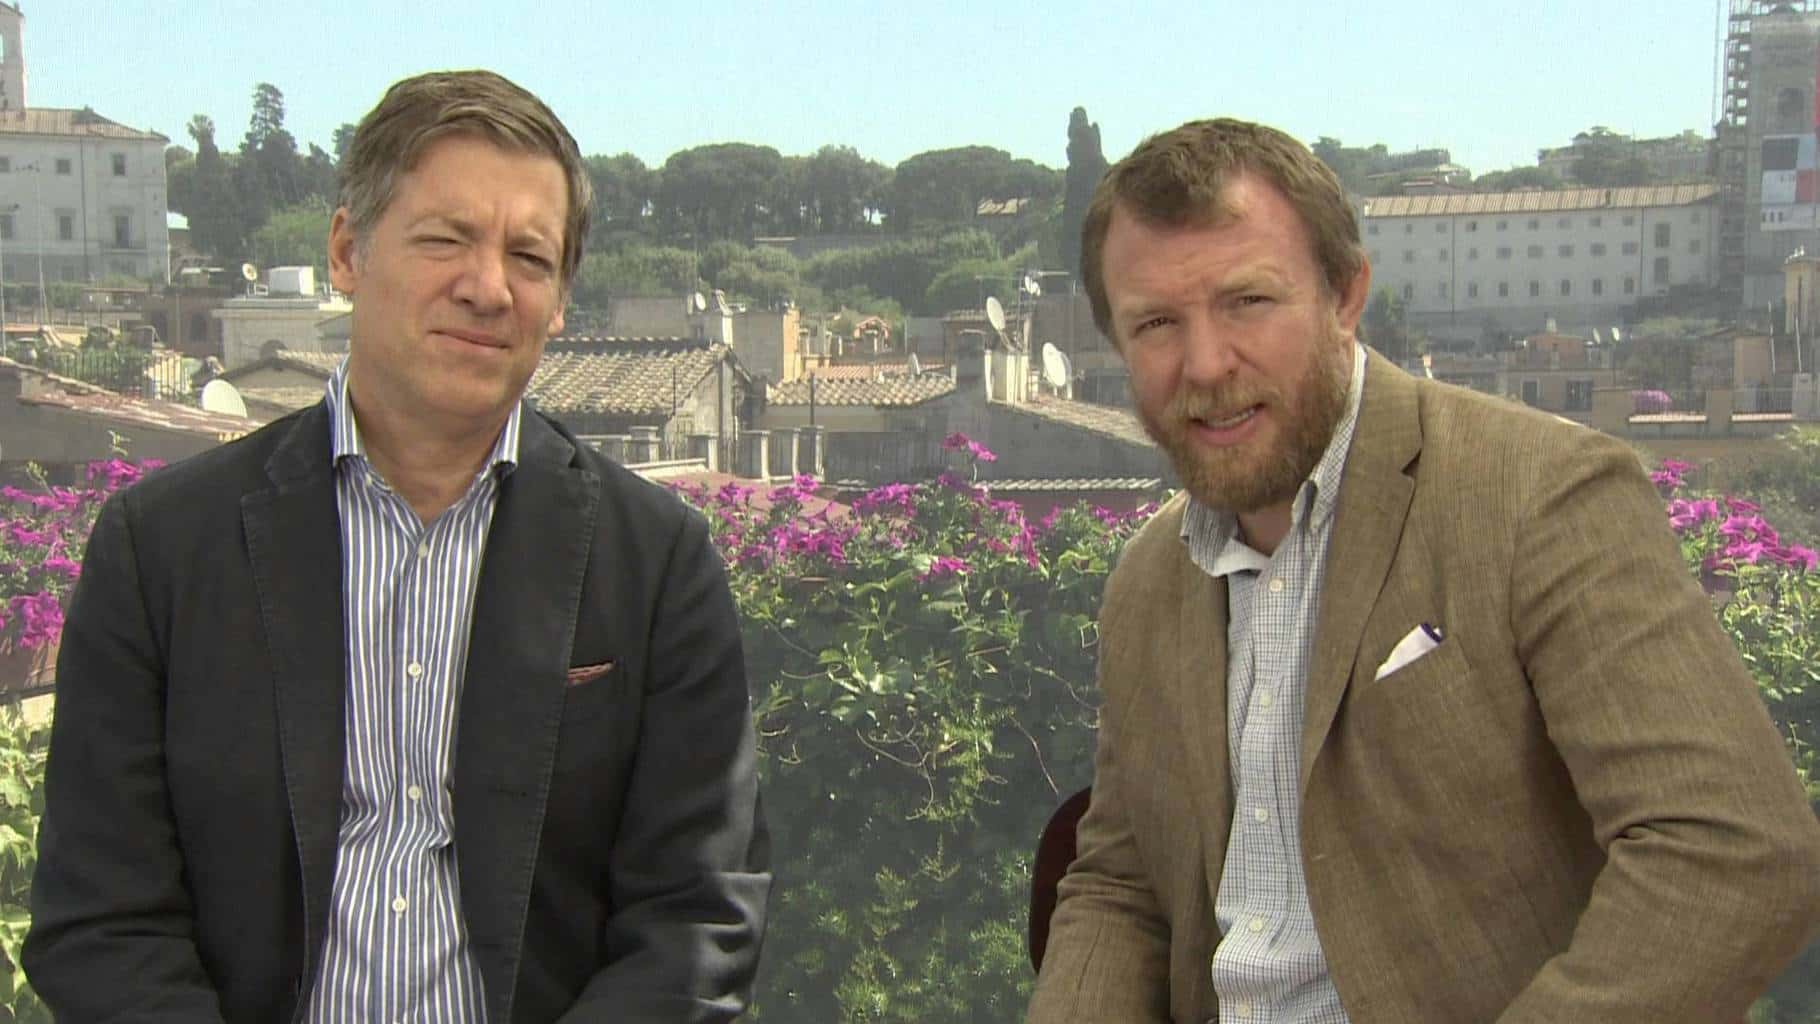 film reviews   movies   features   BRWC Guy Ritchie & Lionel Wigram Chat About Uncle